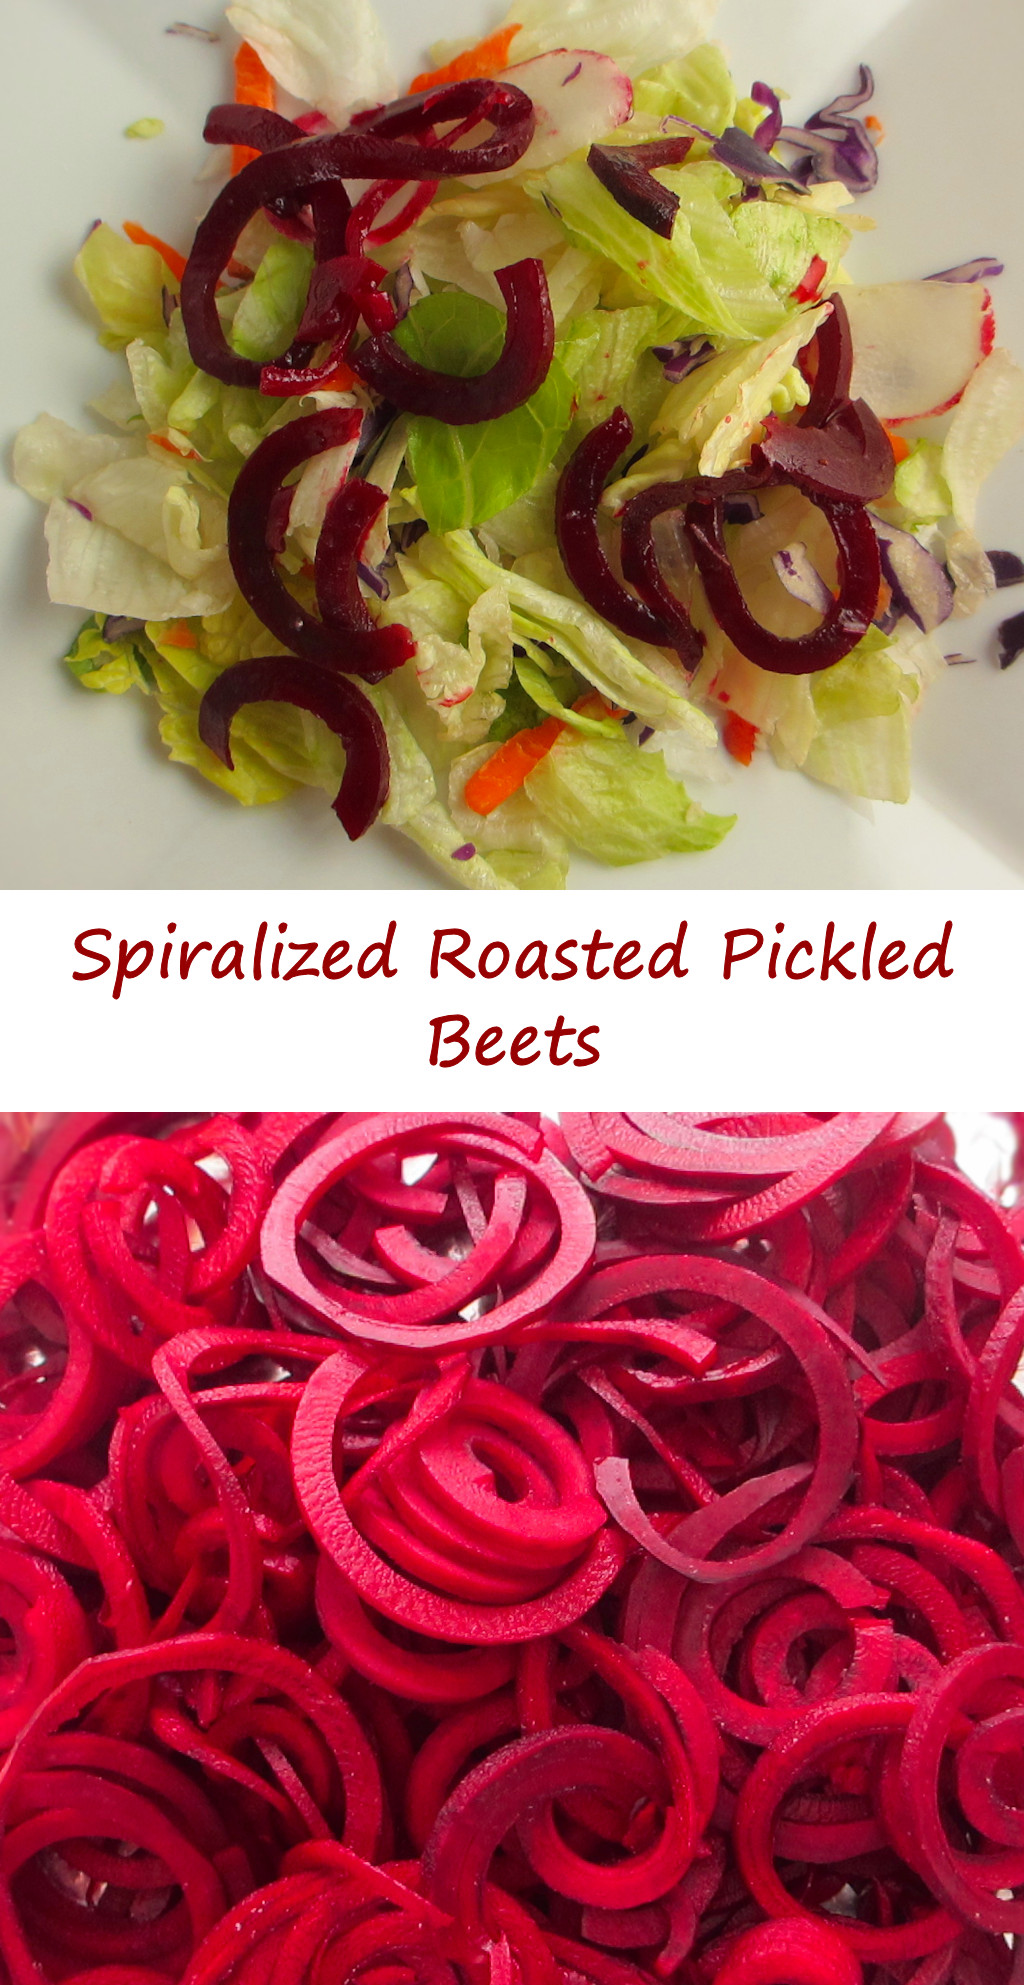 Spiralized Roasted Pickled Beets